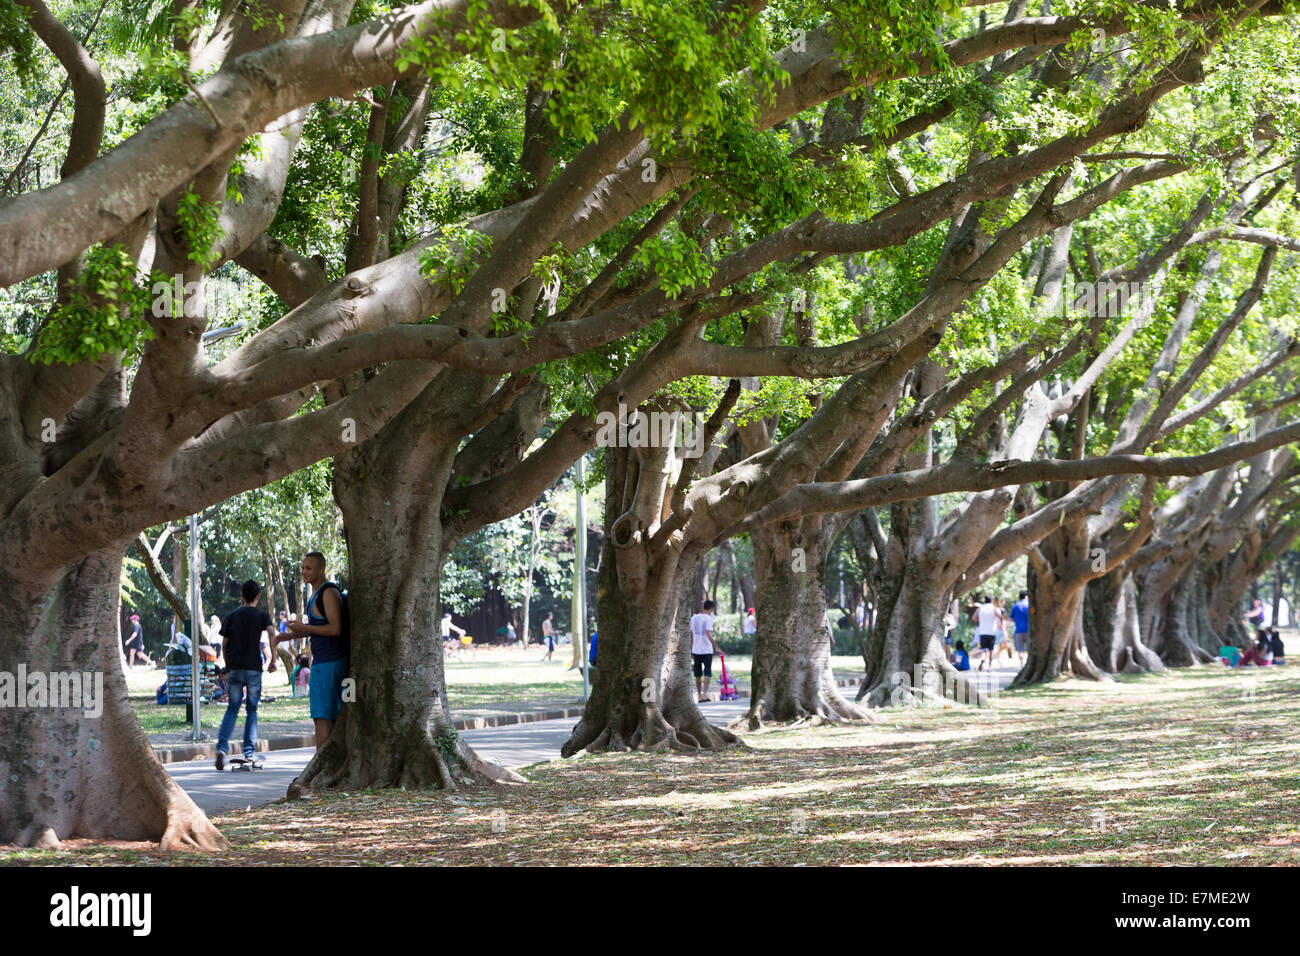 ficus trees forest ibirapuera park sao paulo brazil stock image - Ficus Trees